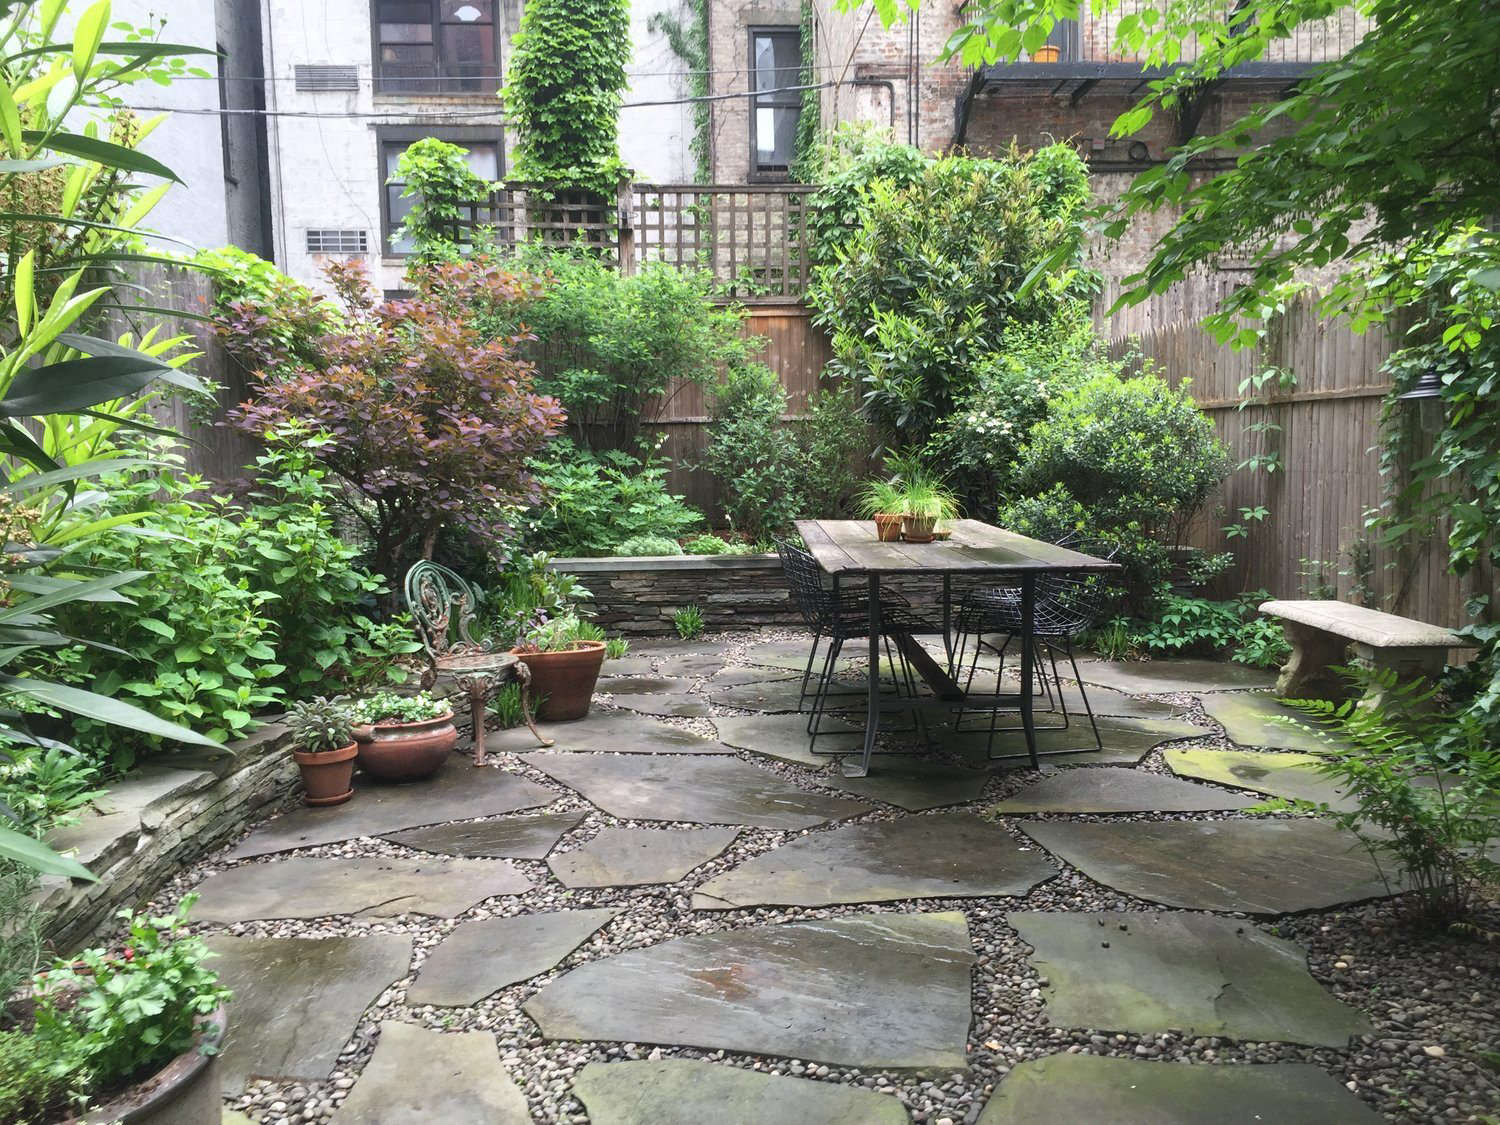 Rental Garden Makeovers: 10 Best Budget Ideas for an ... on Small Backyard Patio Ideas On A Budget id=85824